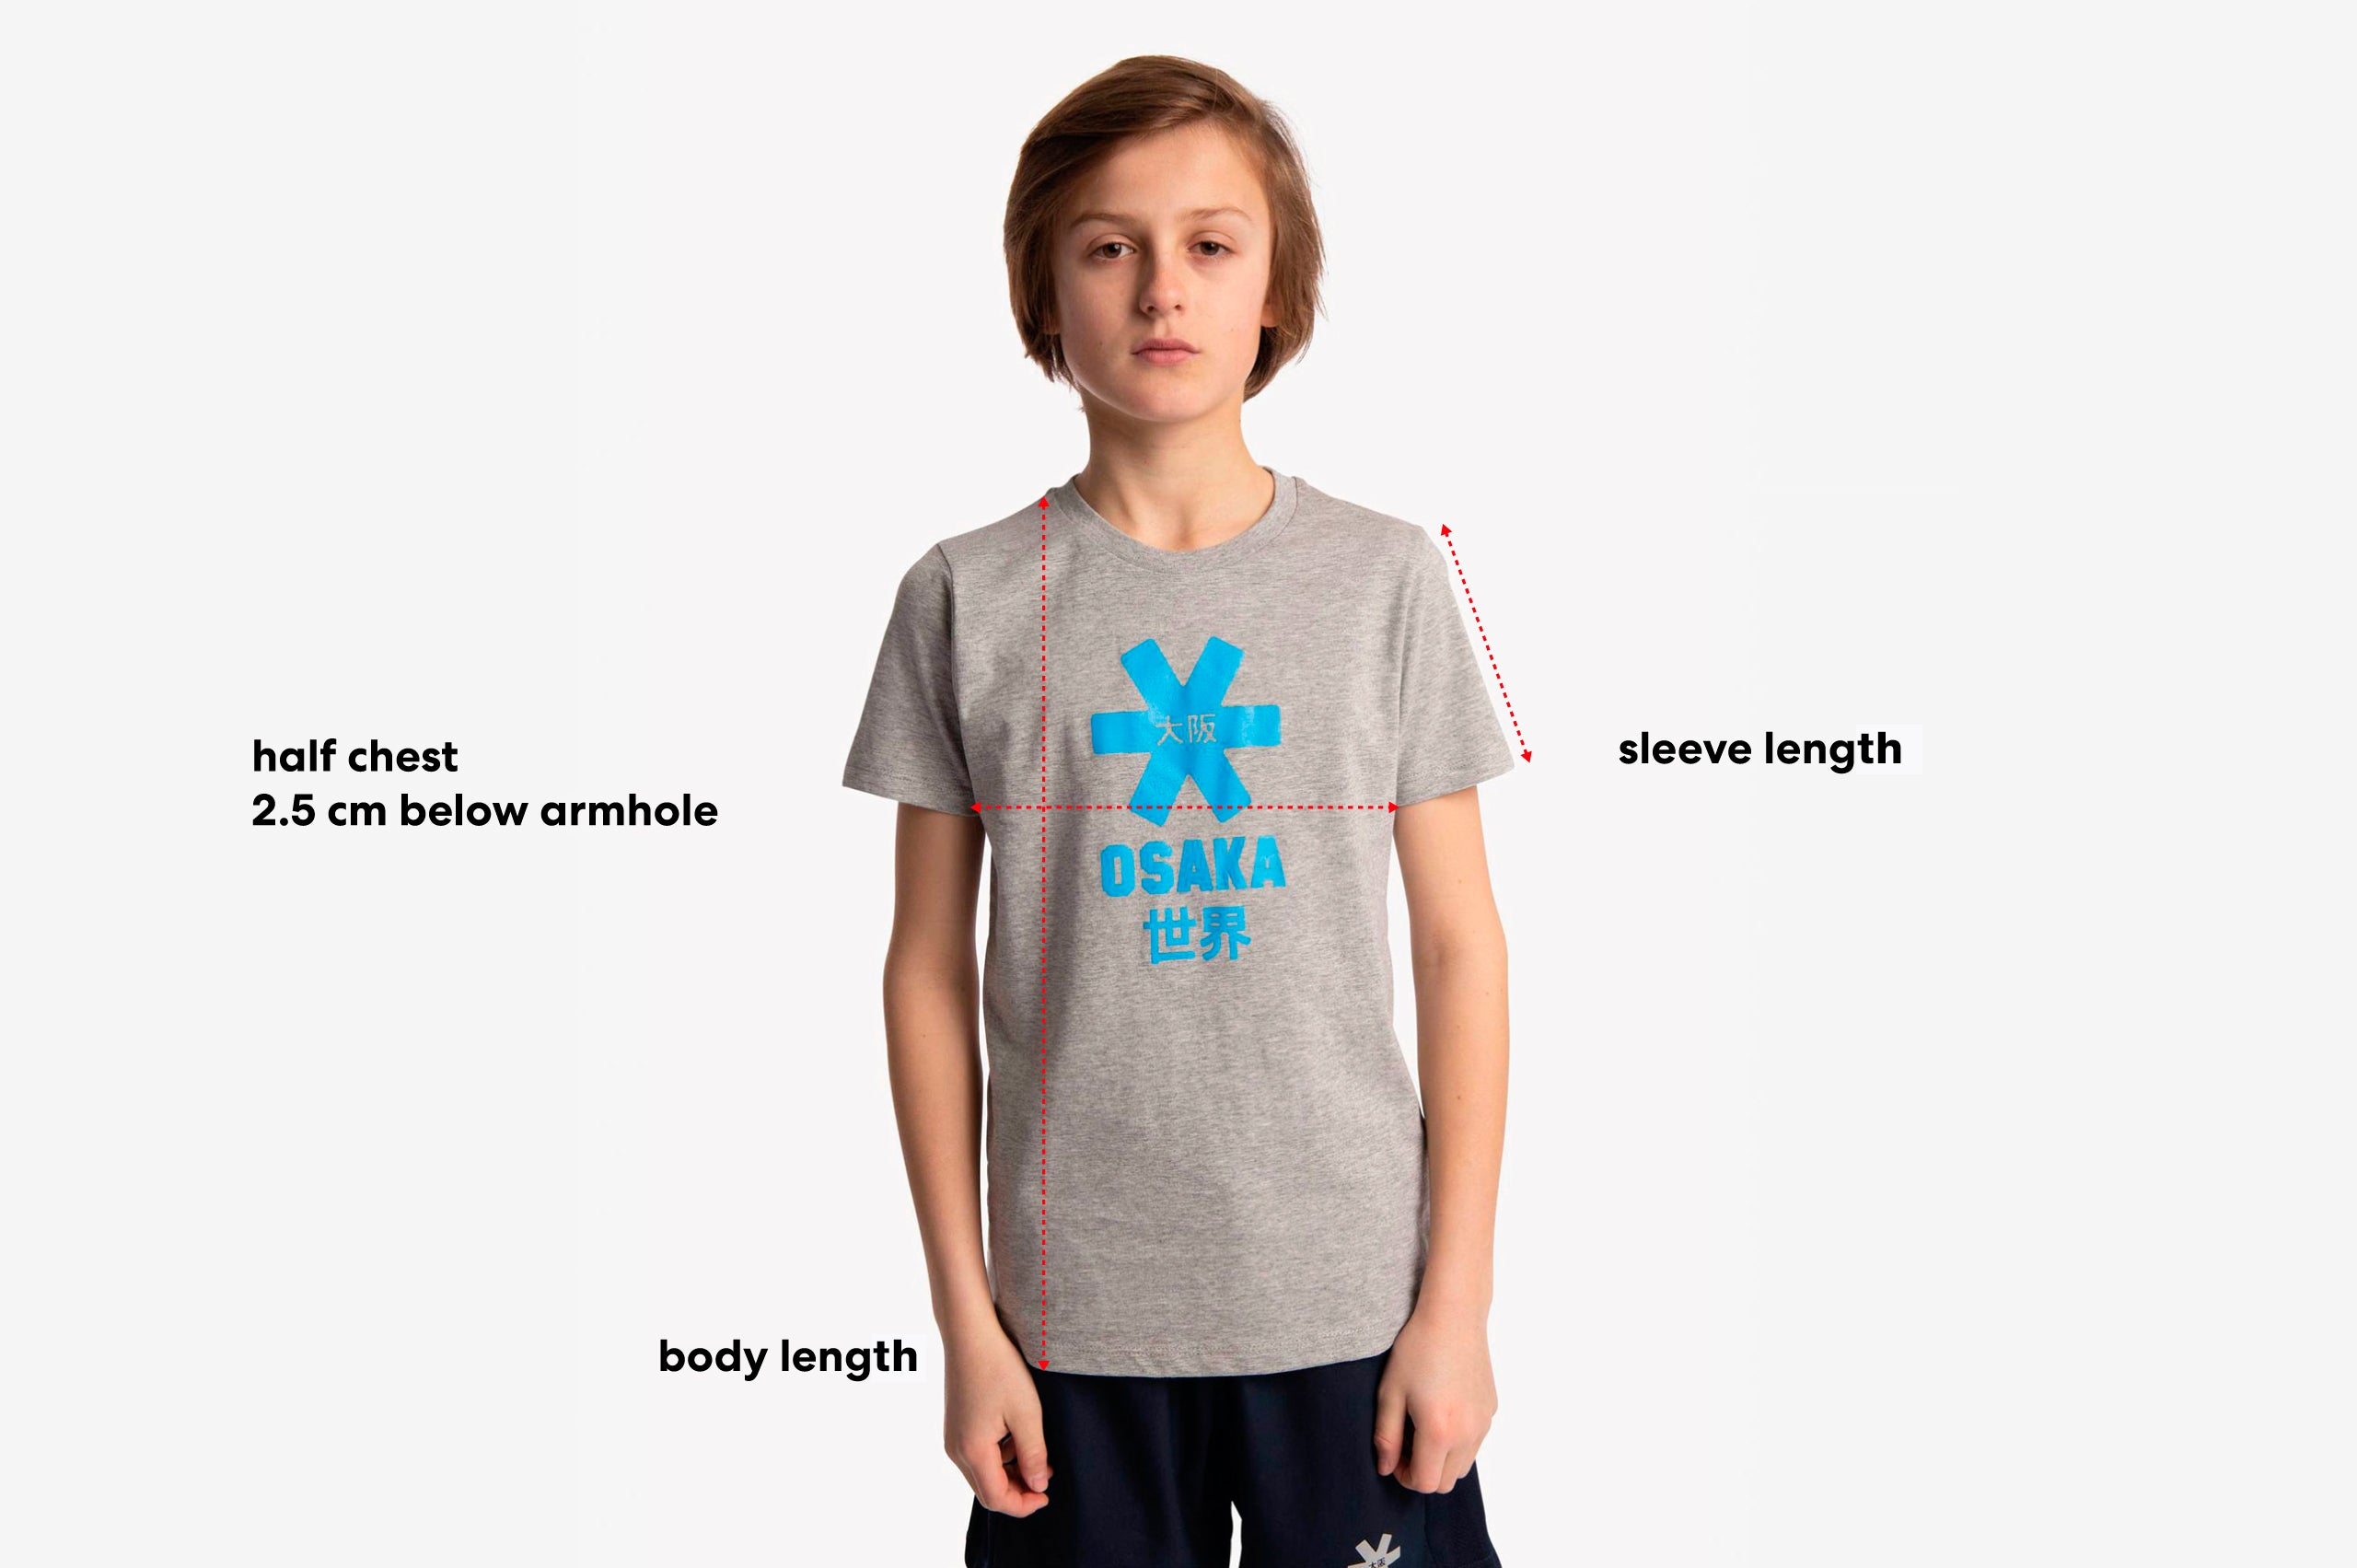 Size guide of a kids tee